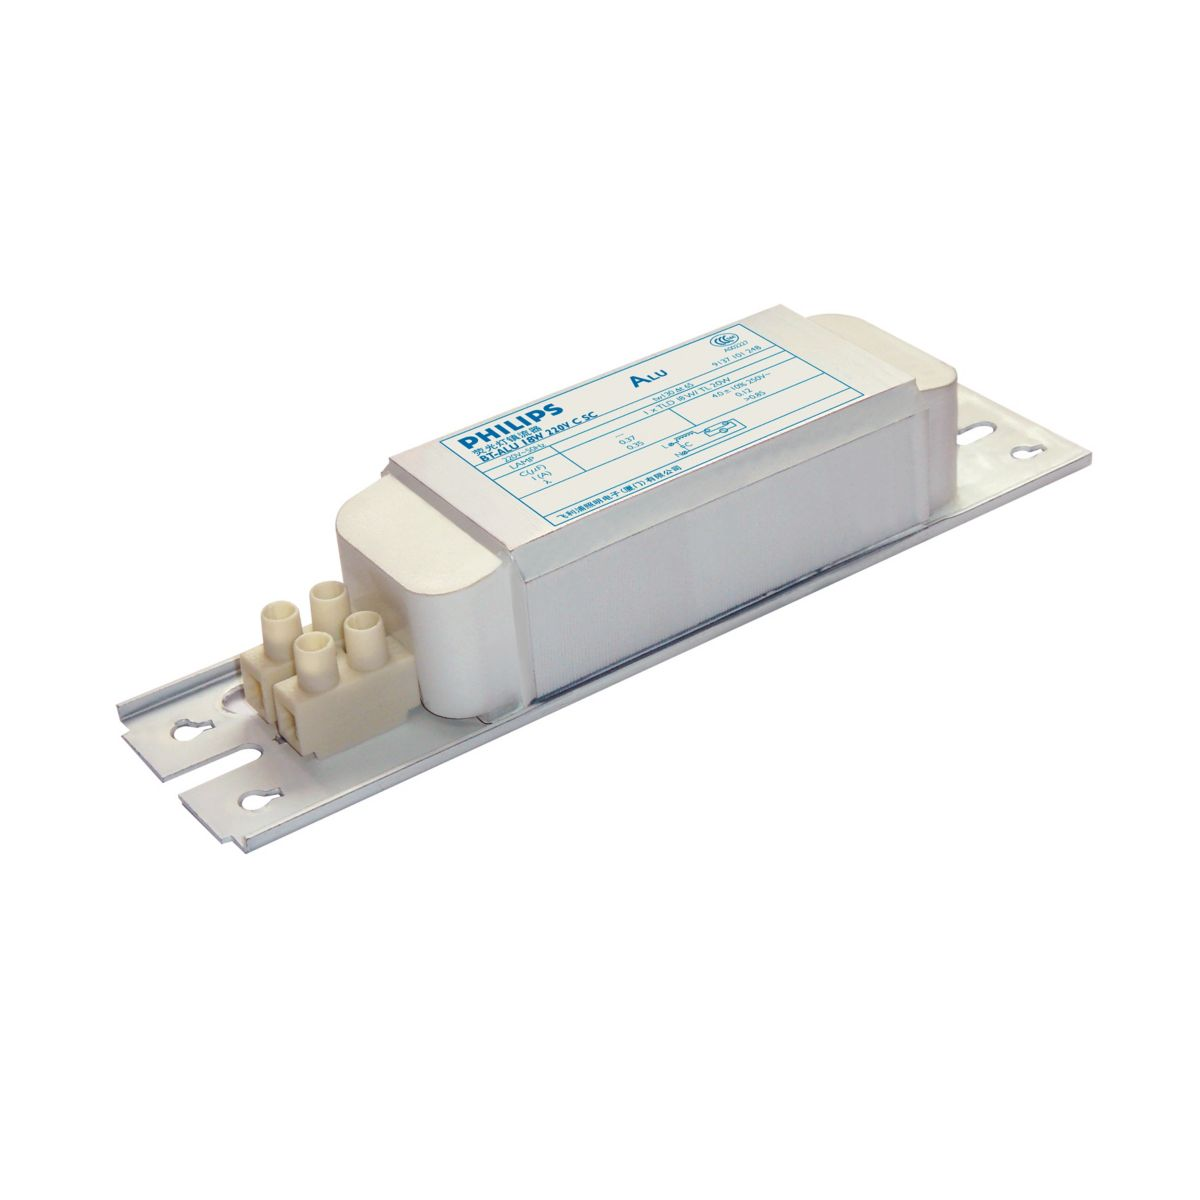 BT-ALU EM ballasts for TL Fluorescent l&s Fluorescent electromagnetic - Philips Lighting  sc 1 st  Philips Lighting & BT-ALU EM ballasts for TL Fluorescent lamps Fluorescent ...